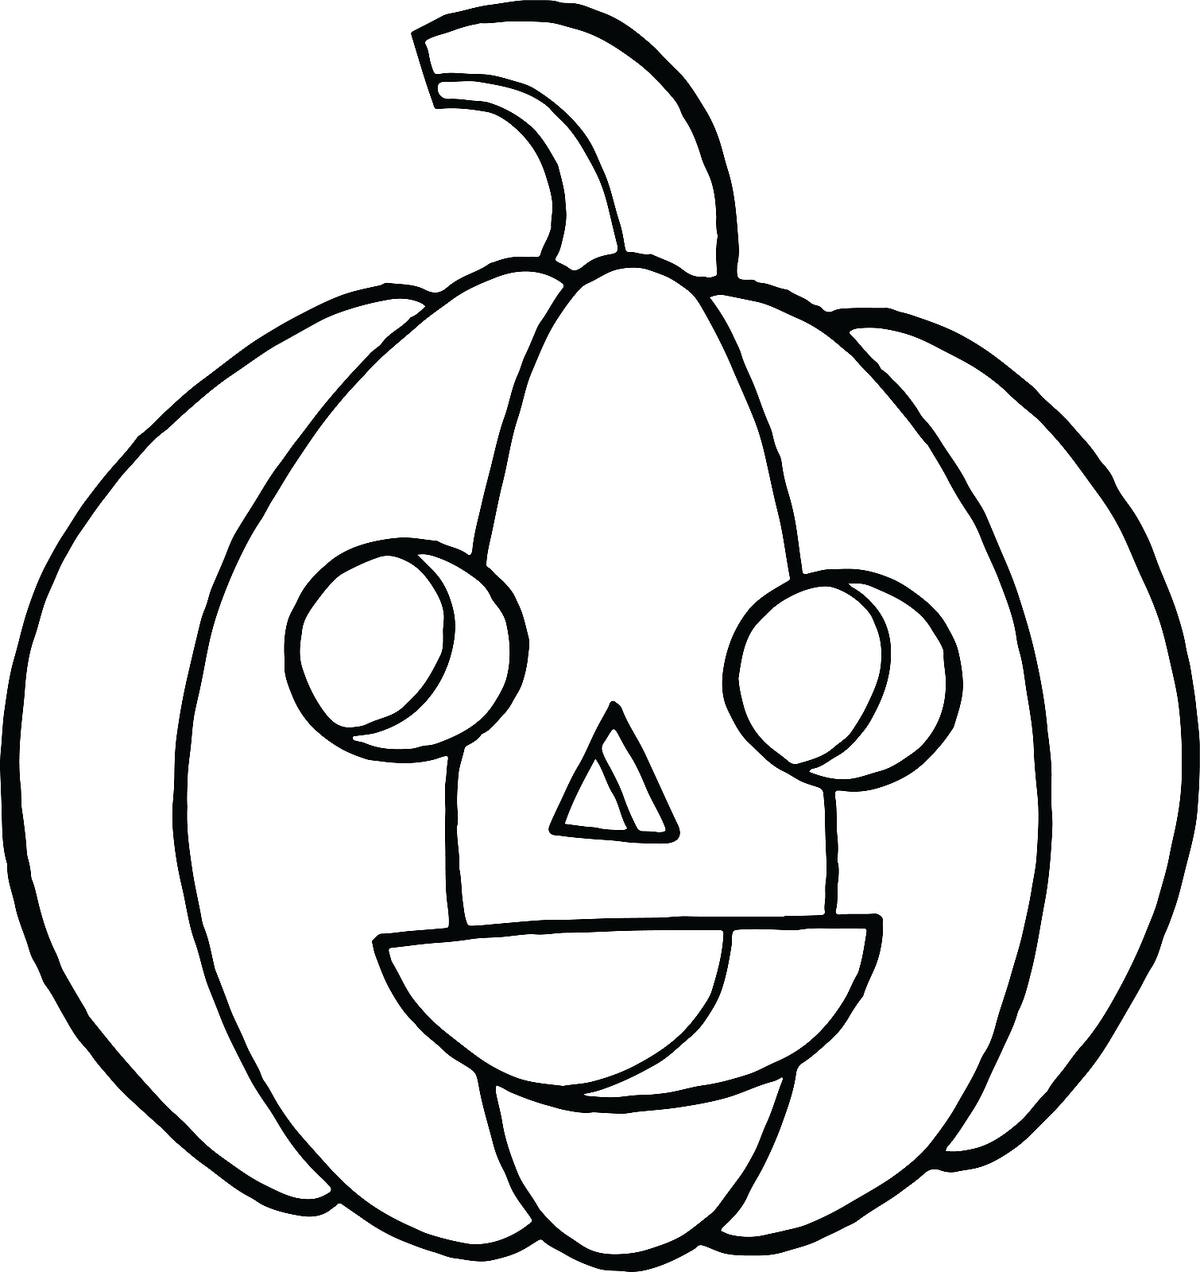 Halloween Coloring Pages: 10 Free Spooky Printable